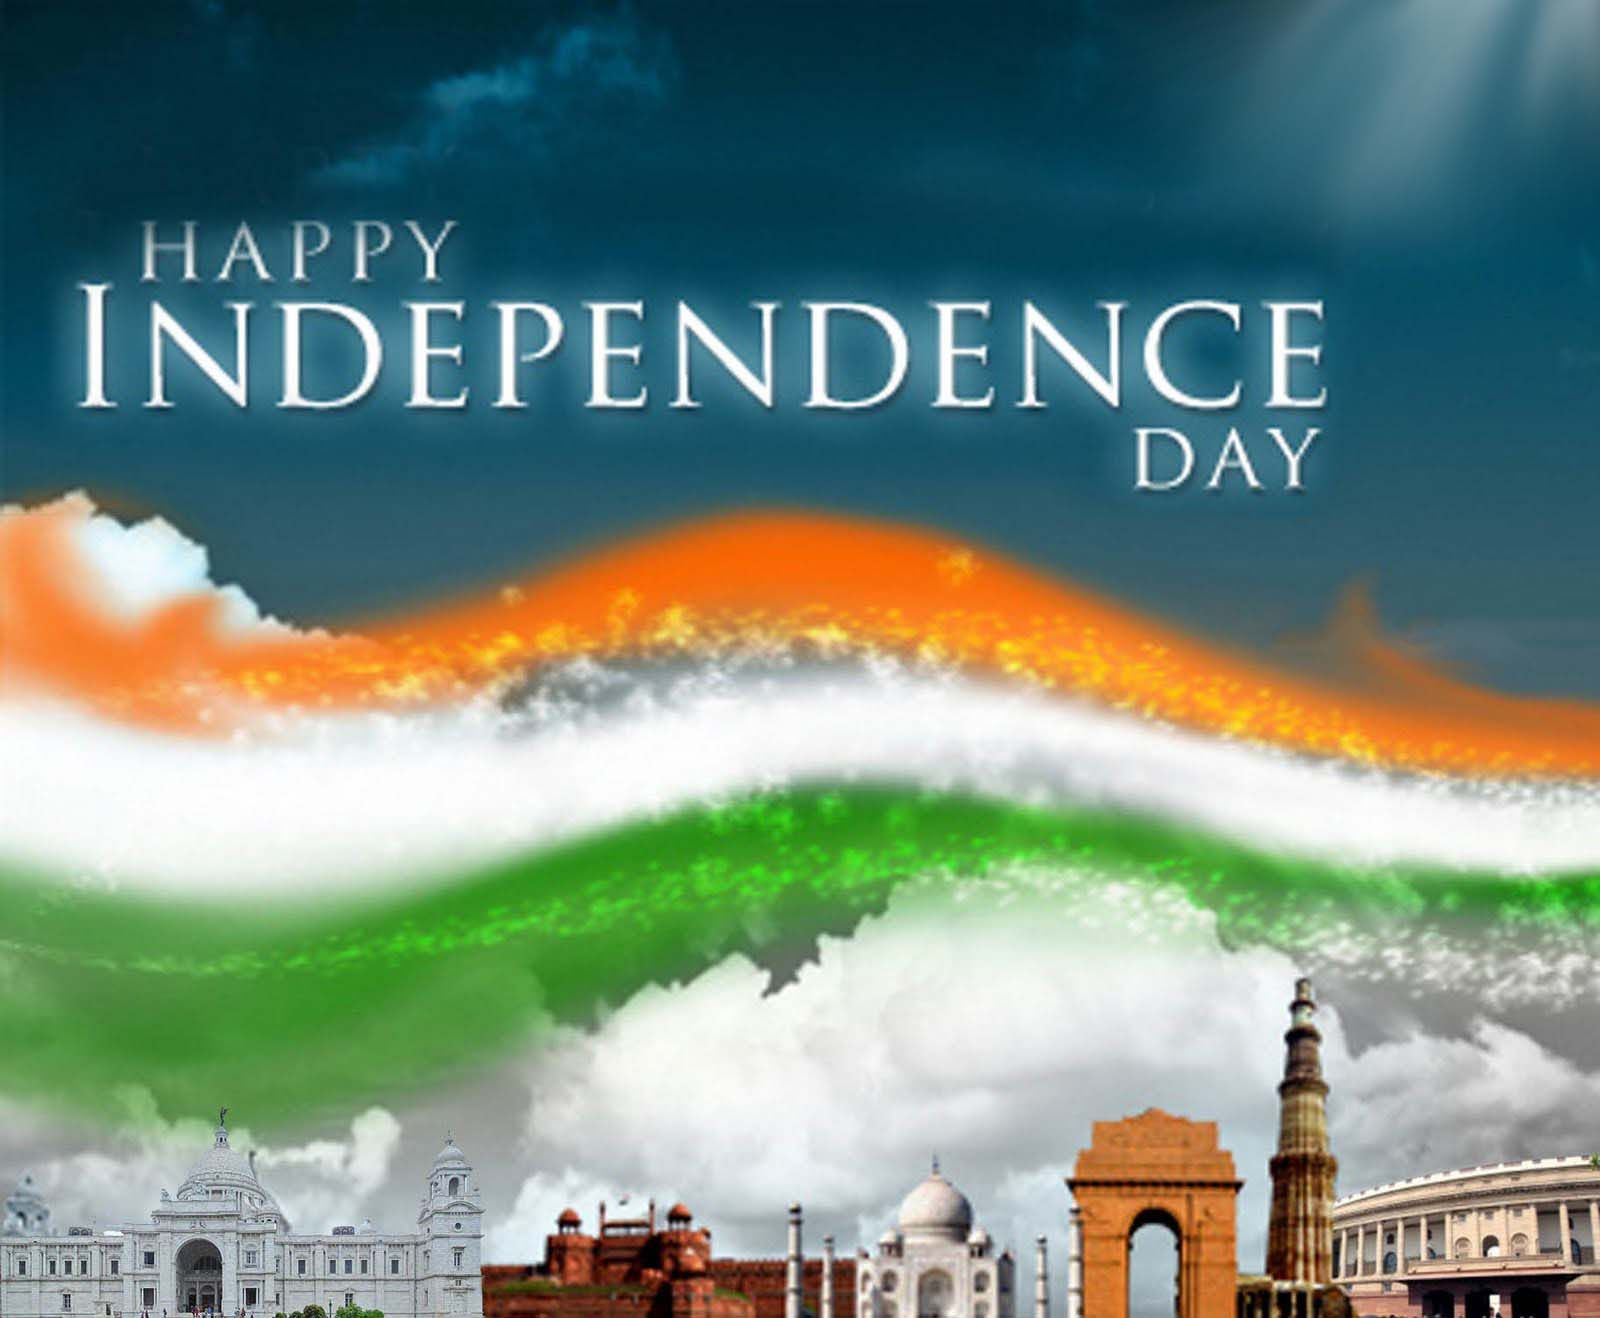 15 August Images HappyIndependenceDayIndiaSacrificeImages Happy 1600x1318